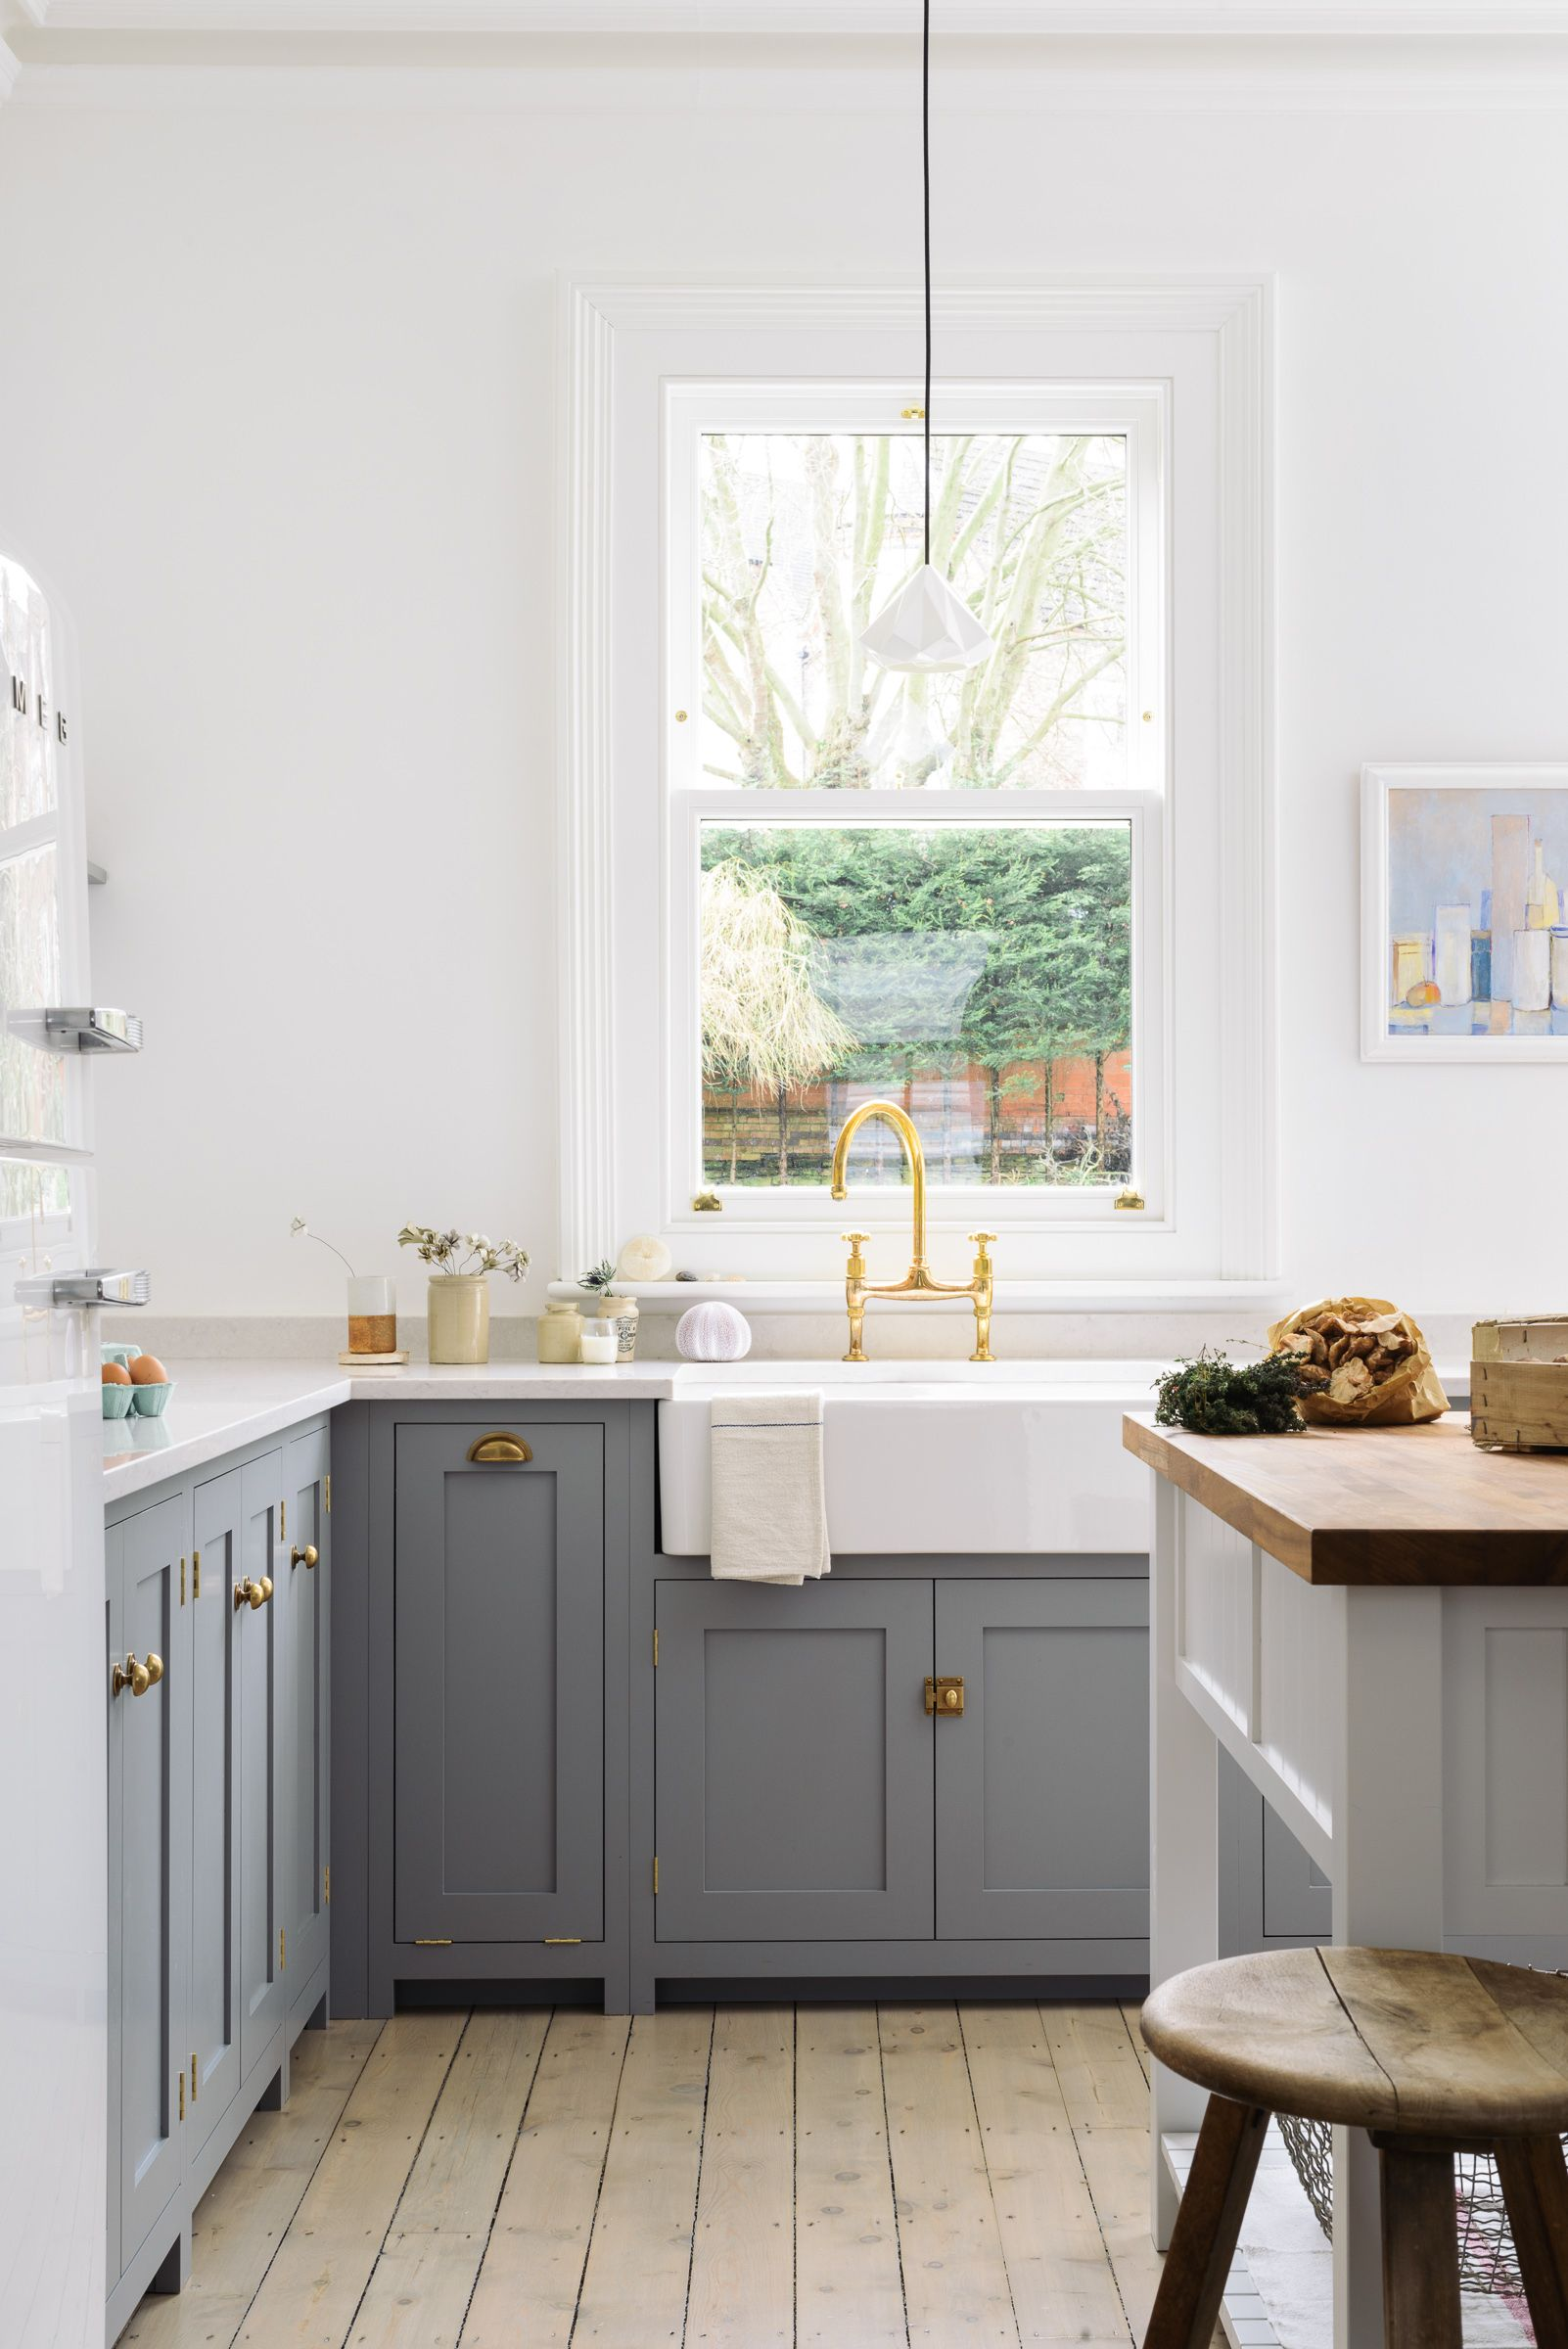 The Sun's Out Spring Is On Its Way So It's Photoshoot Time Classy Kitchen Design Grey Decorating Design